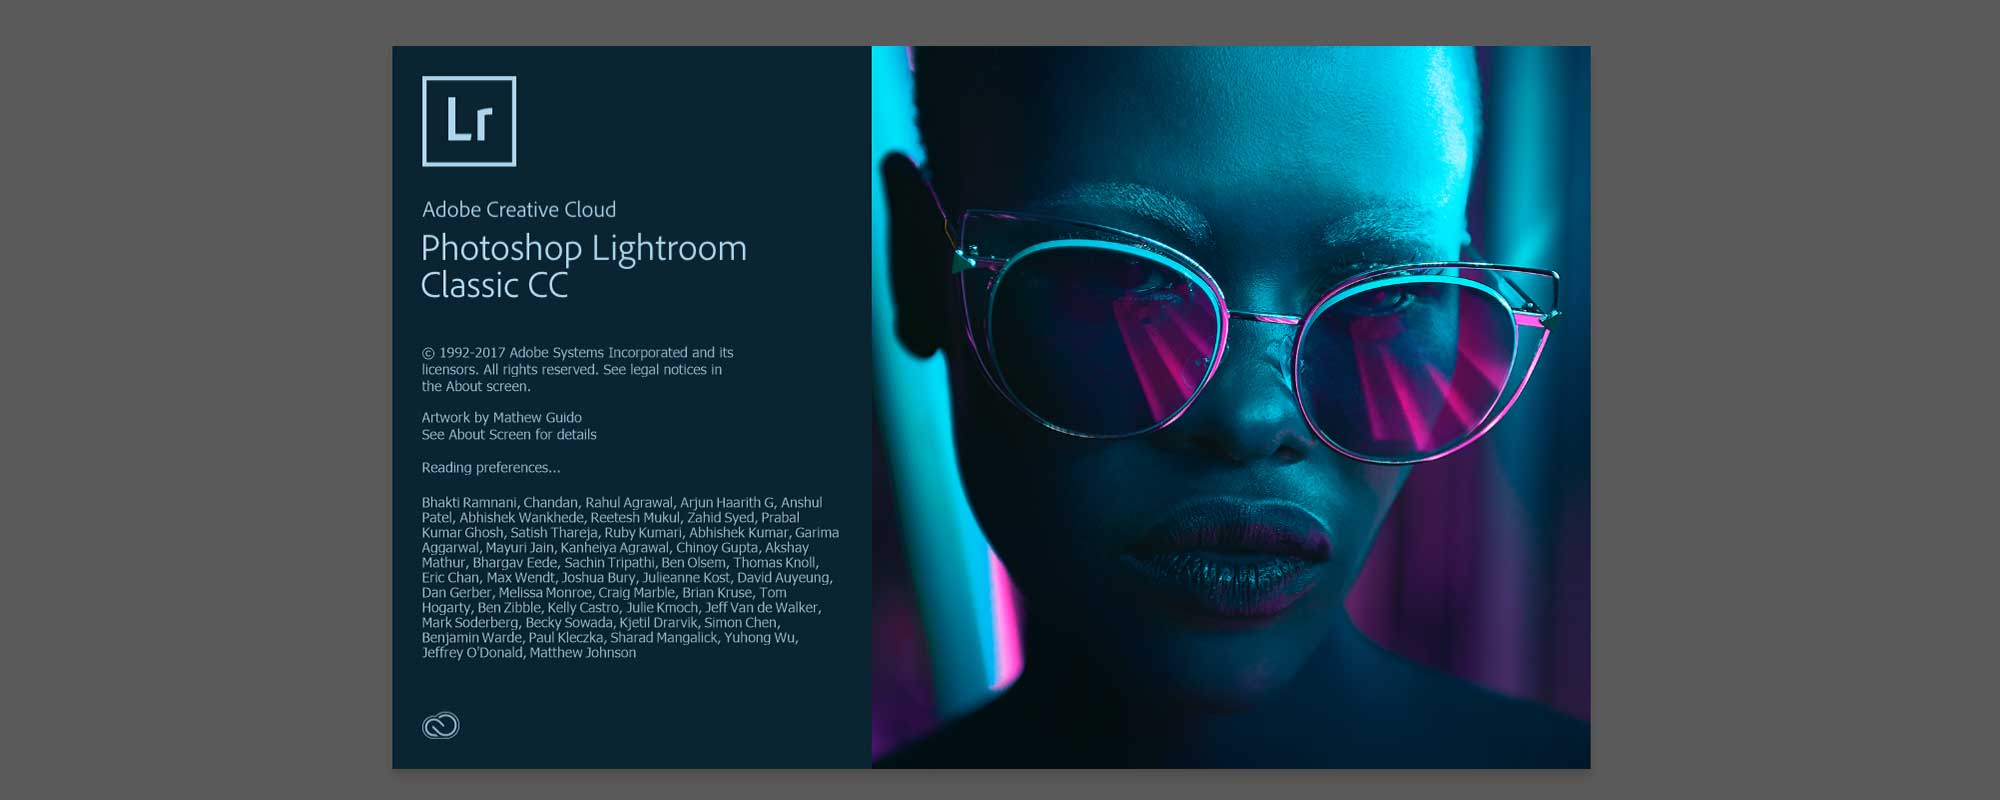 Adobe Lightroom Classic CC Version 2018 start screen